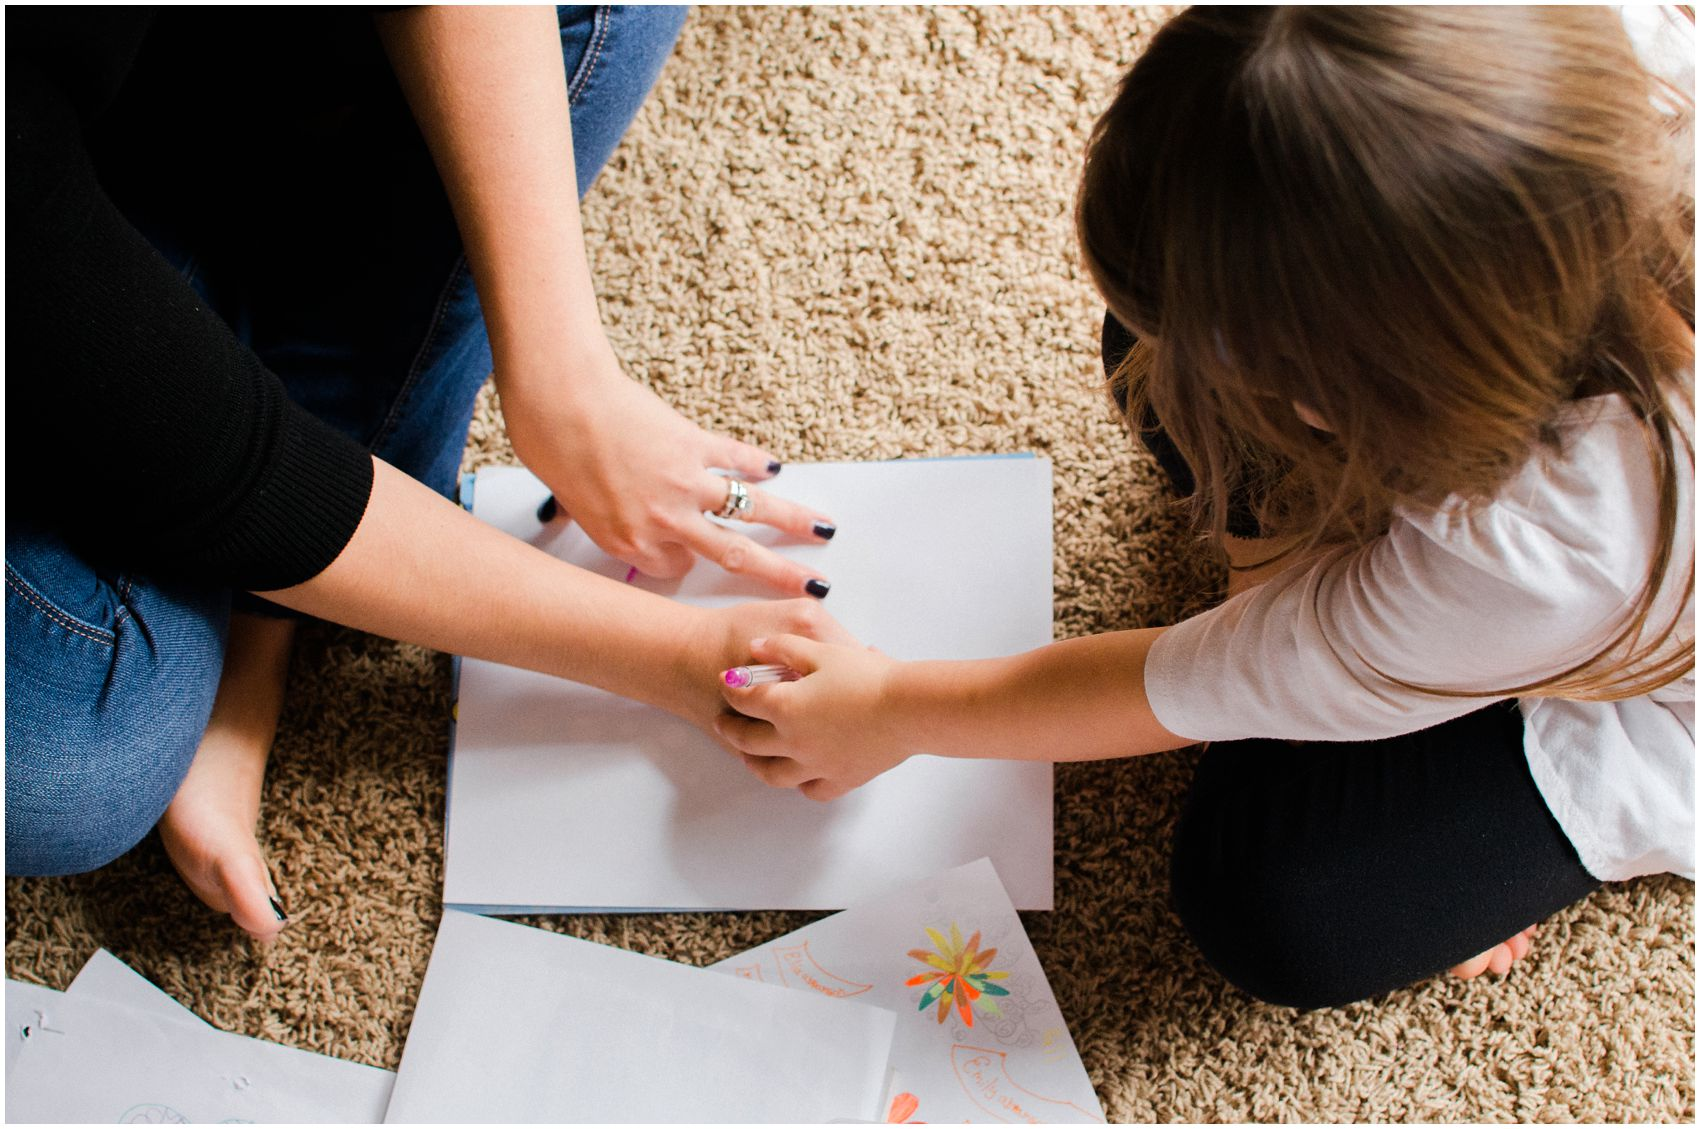 mom and daughter holding hands and coloring a paper on the floor with a pink marker